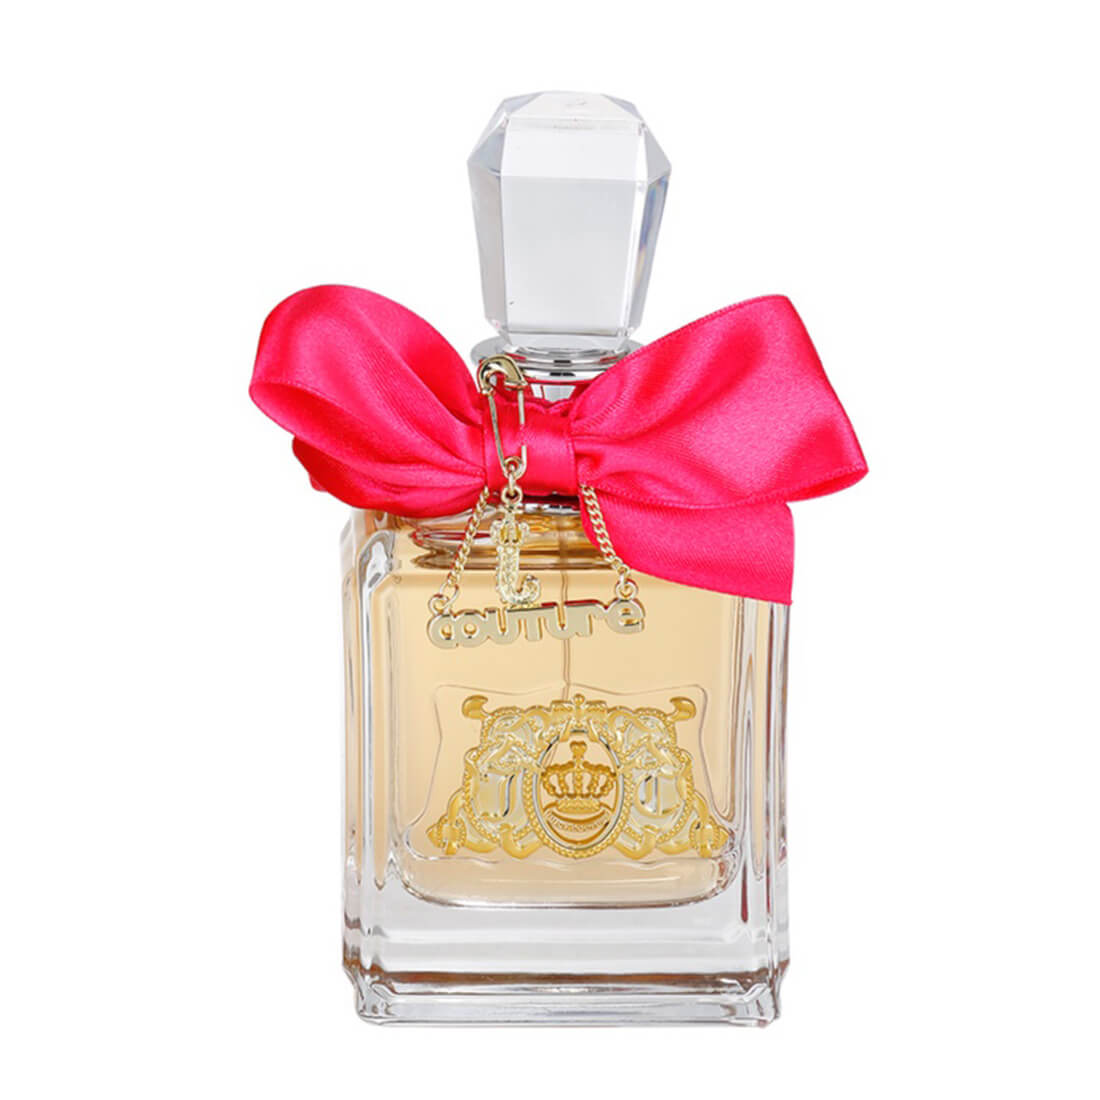 Juicy Couture Viva La Juicy Eau De Perfume For Women - 100ml